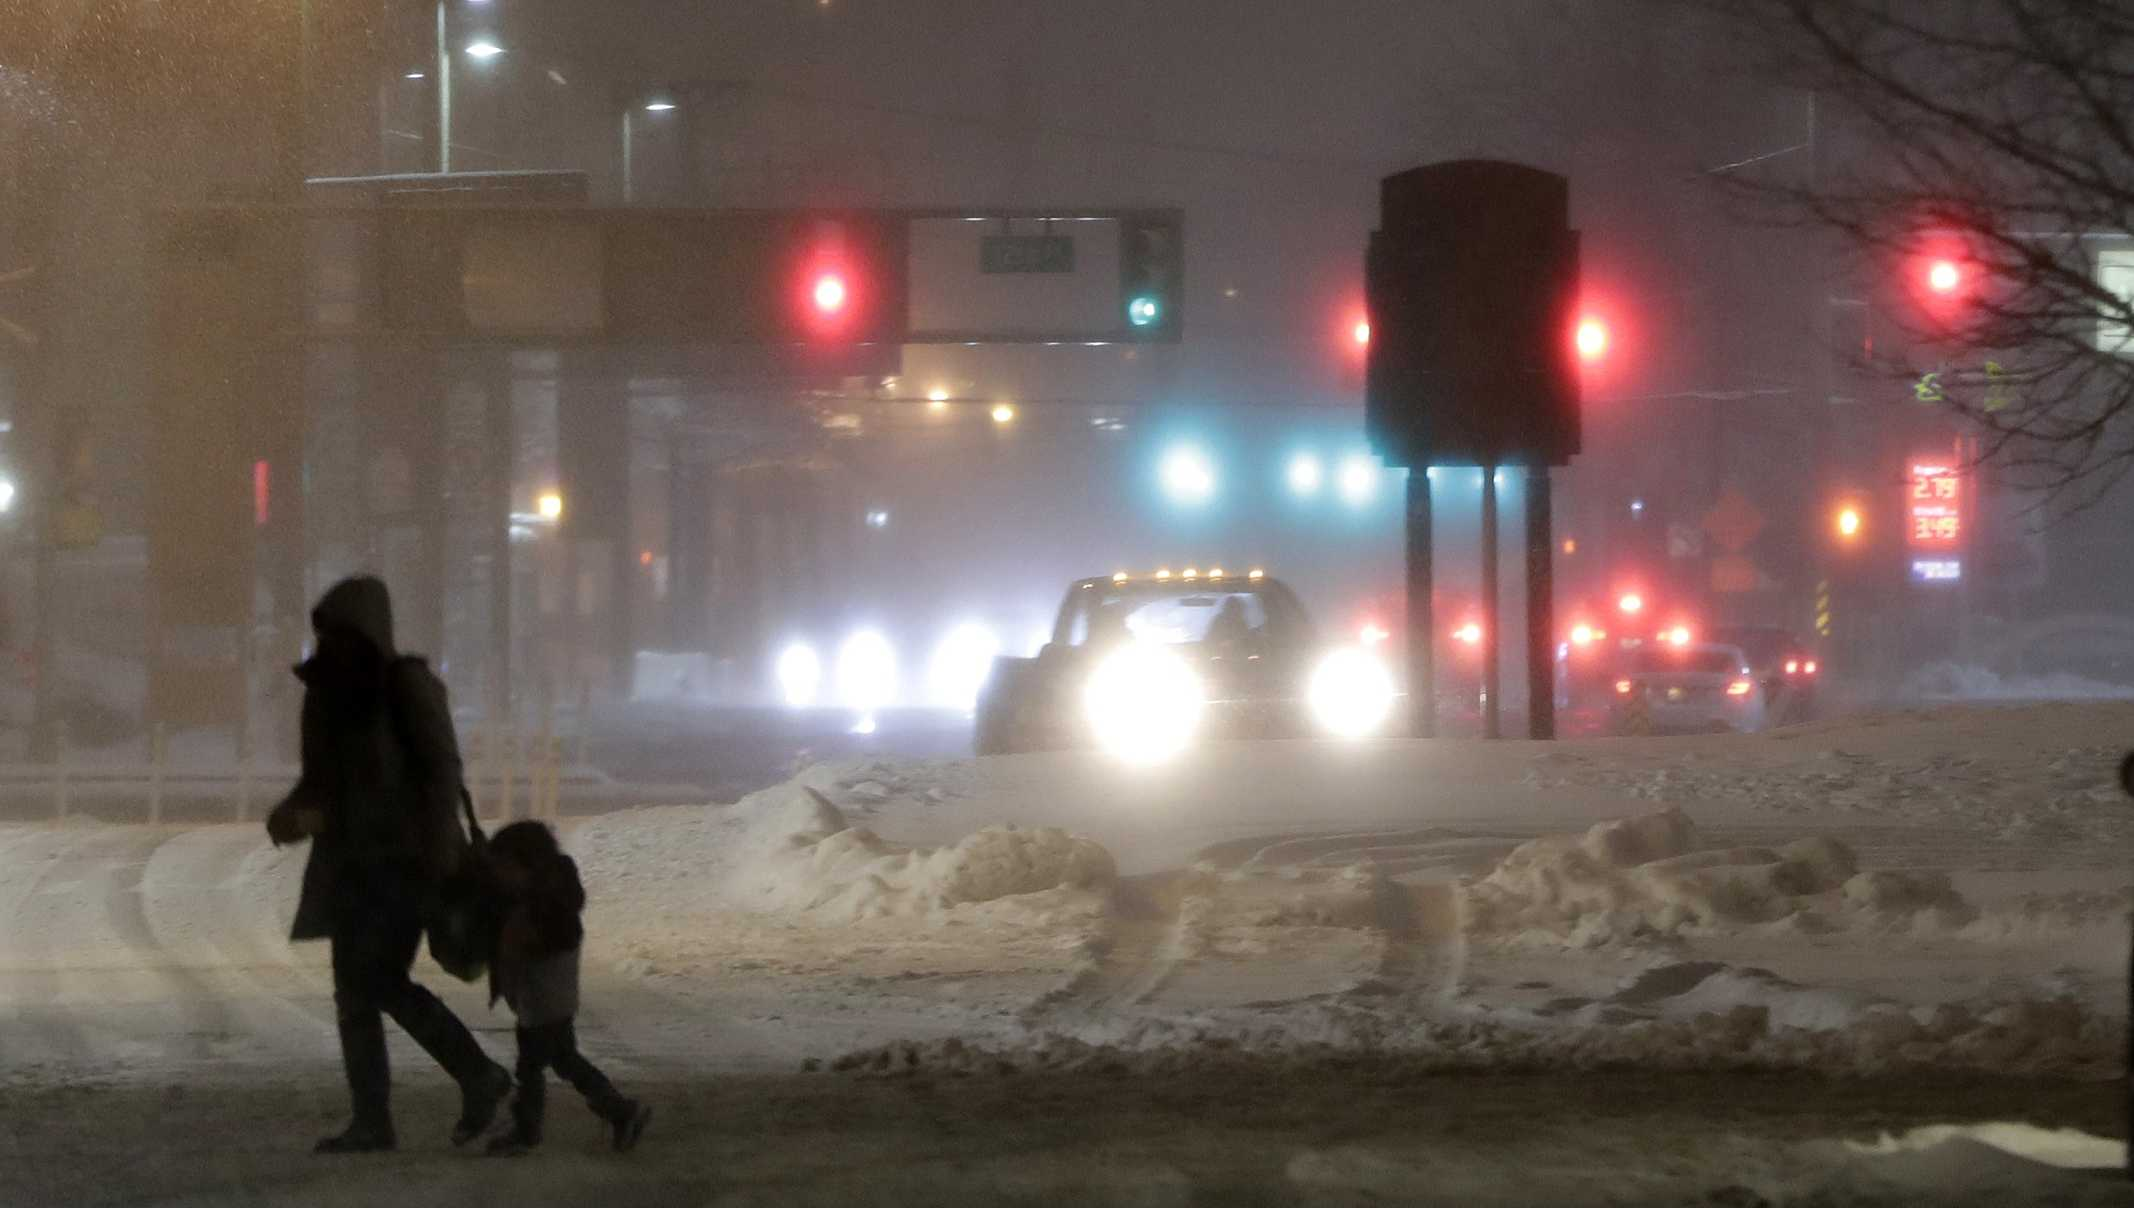 A woman and a child cross a snow-covered street during a snowstorm, Wednesday, March 21, 2018, in Jersey City, N.J. A spring nor'easter targeted the Northeast on Wednesday with strong winds and a foot or more of snow expected in some parts of the region.